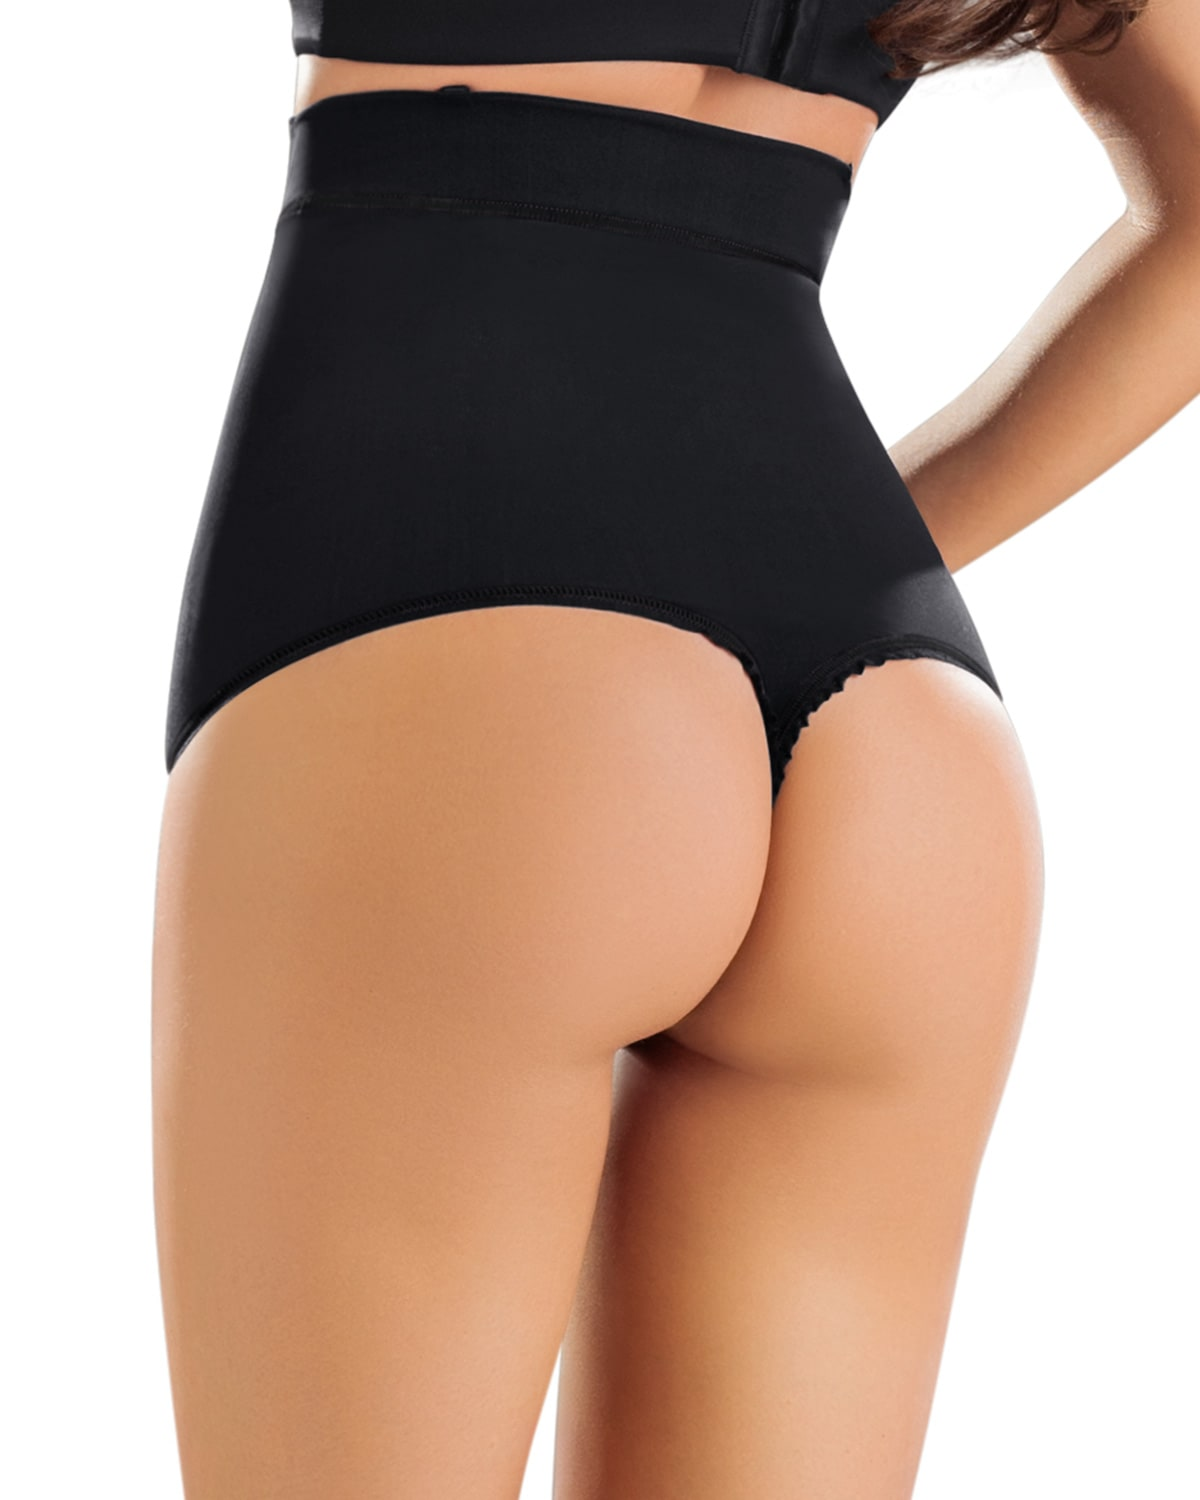 Thong Bottom Invisible Body Shaper